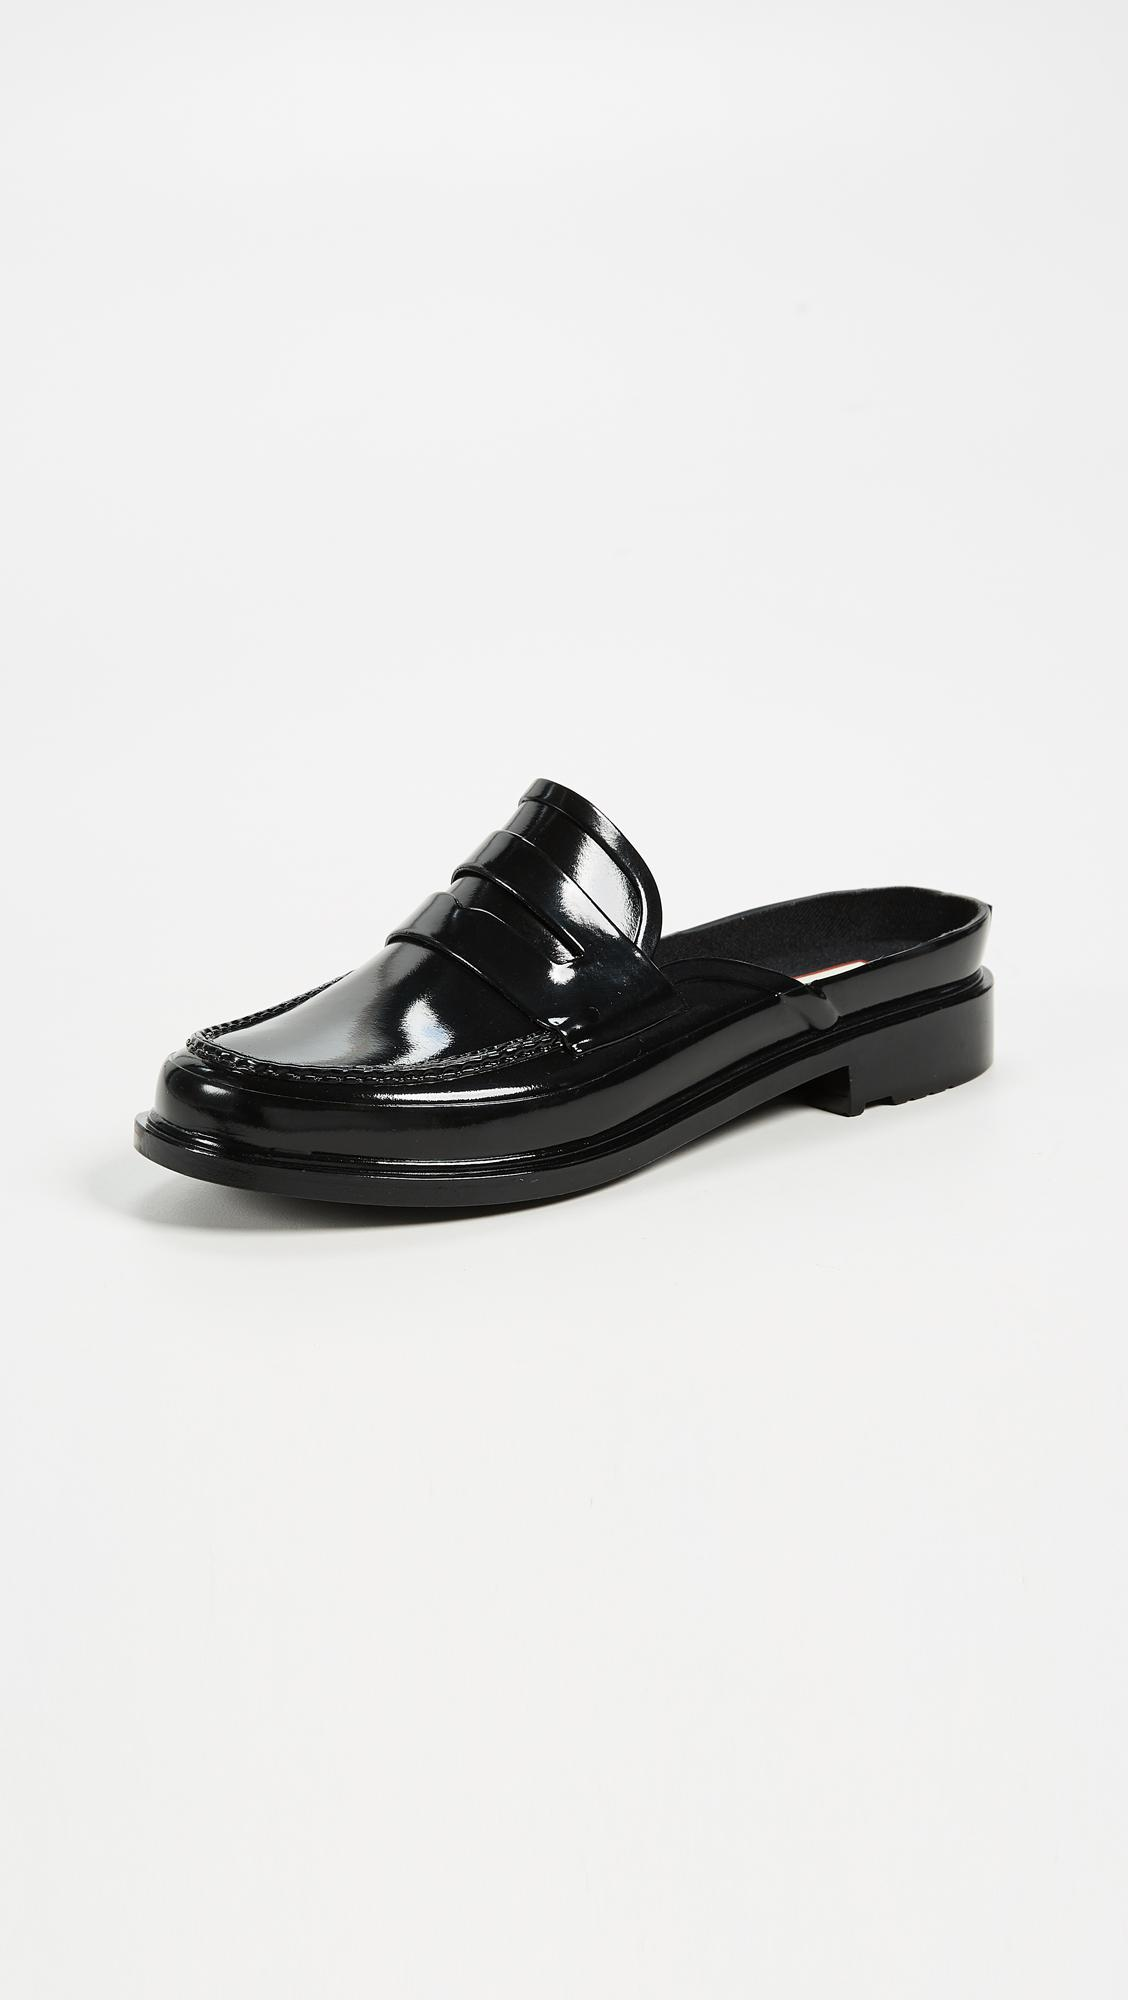 bcbaef2a47c HUNTER Backless Gloss Penny Loafers in Black - Lyst